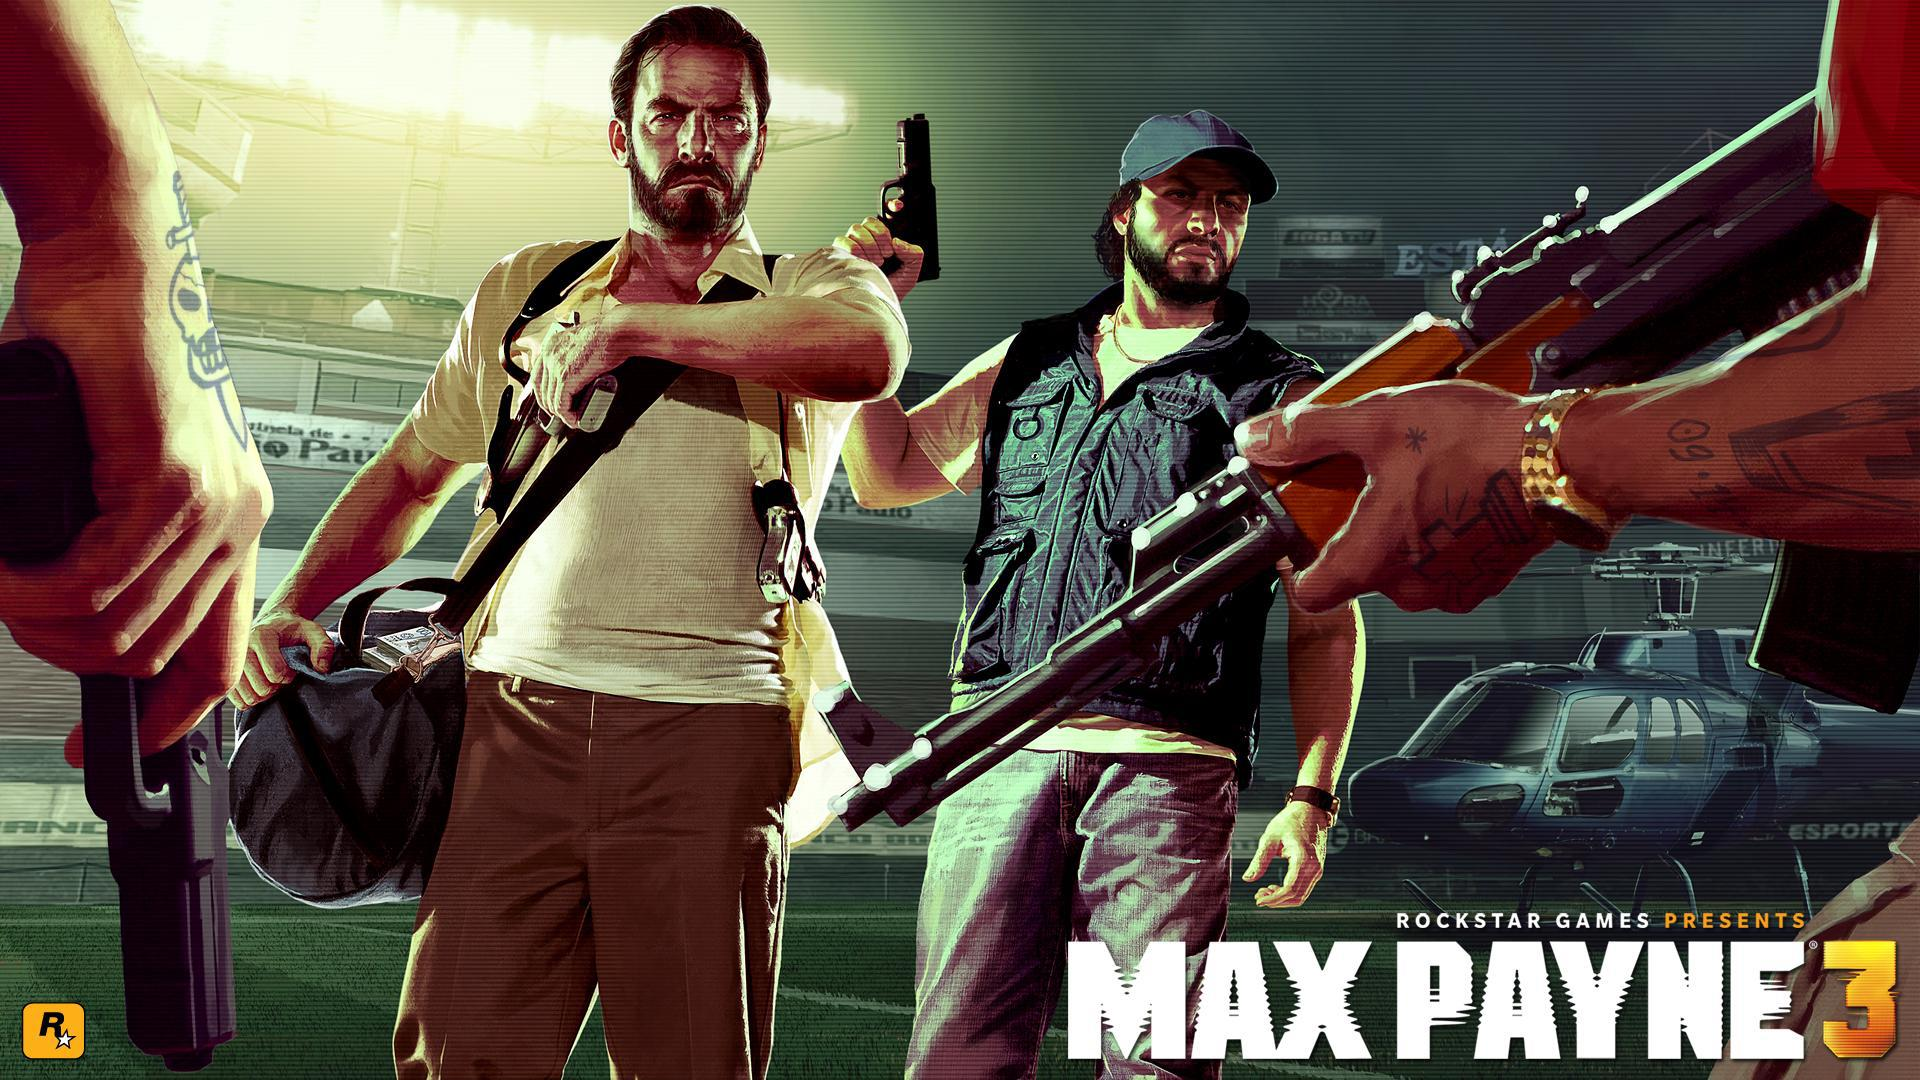 Max Payne 3 Hd Wallpaper Background Image 1920x1080 Id